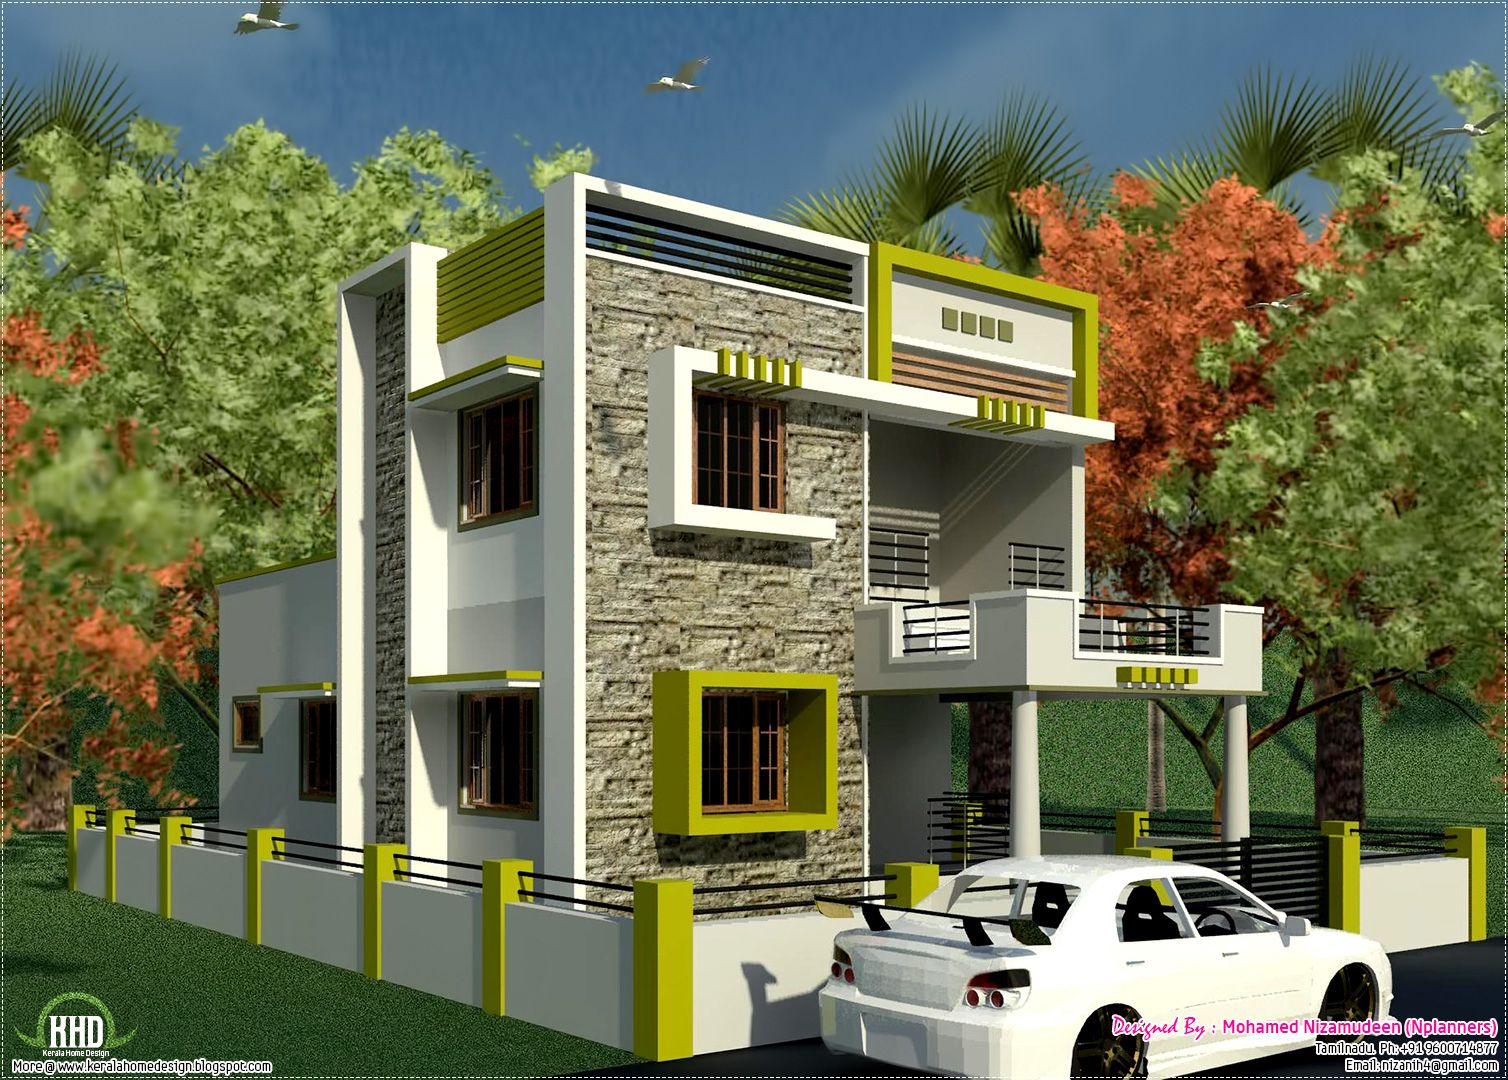 Small house with car park design tobfav com ideas for for House exterior design pictures in indian